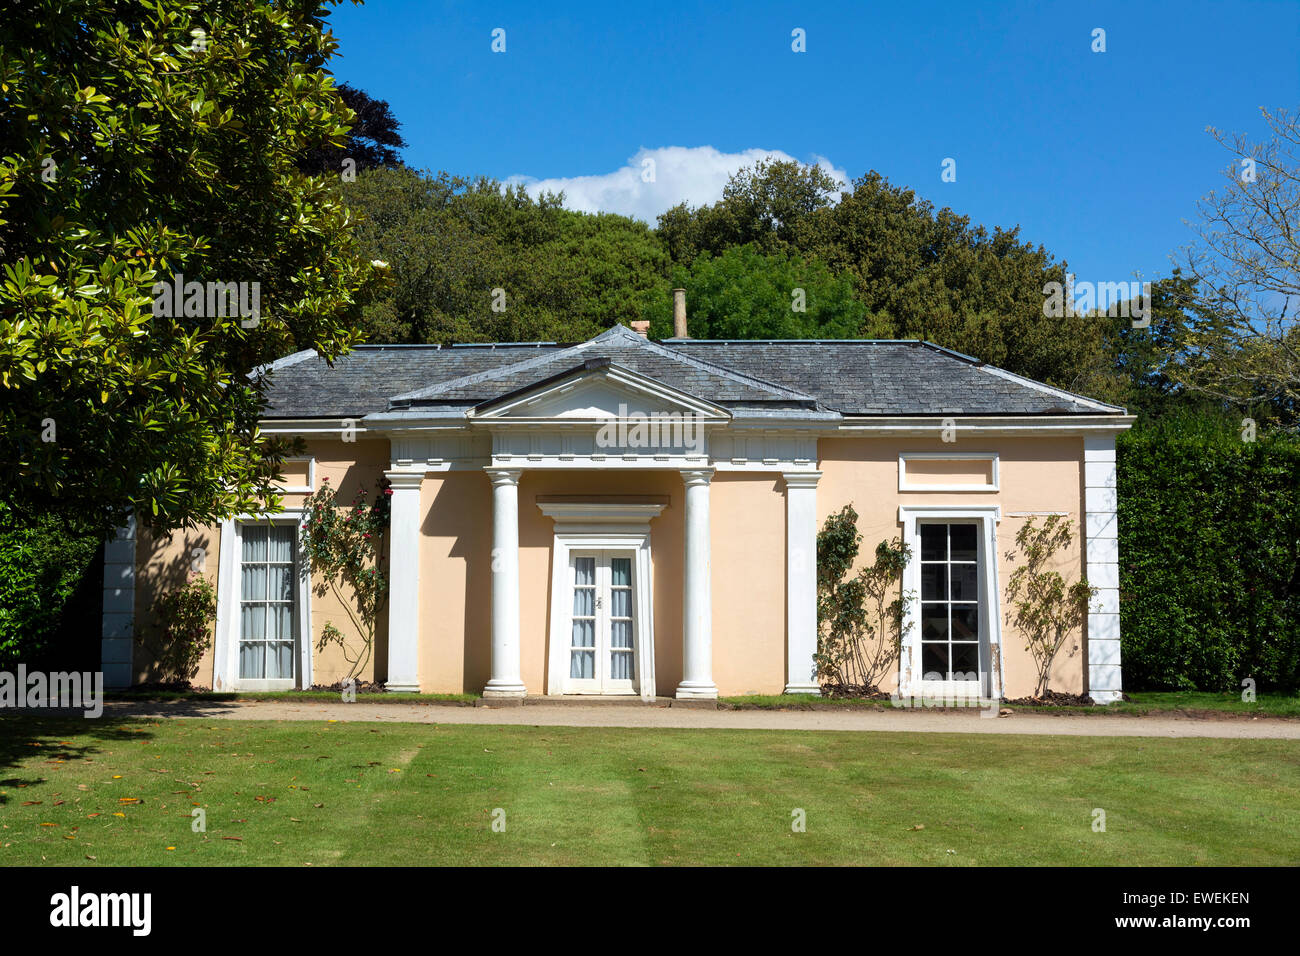 The summerhouse at Mount Edgcumbe in Cornwall, England, UK - Stock Image